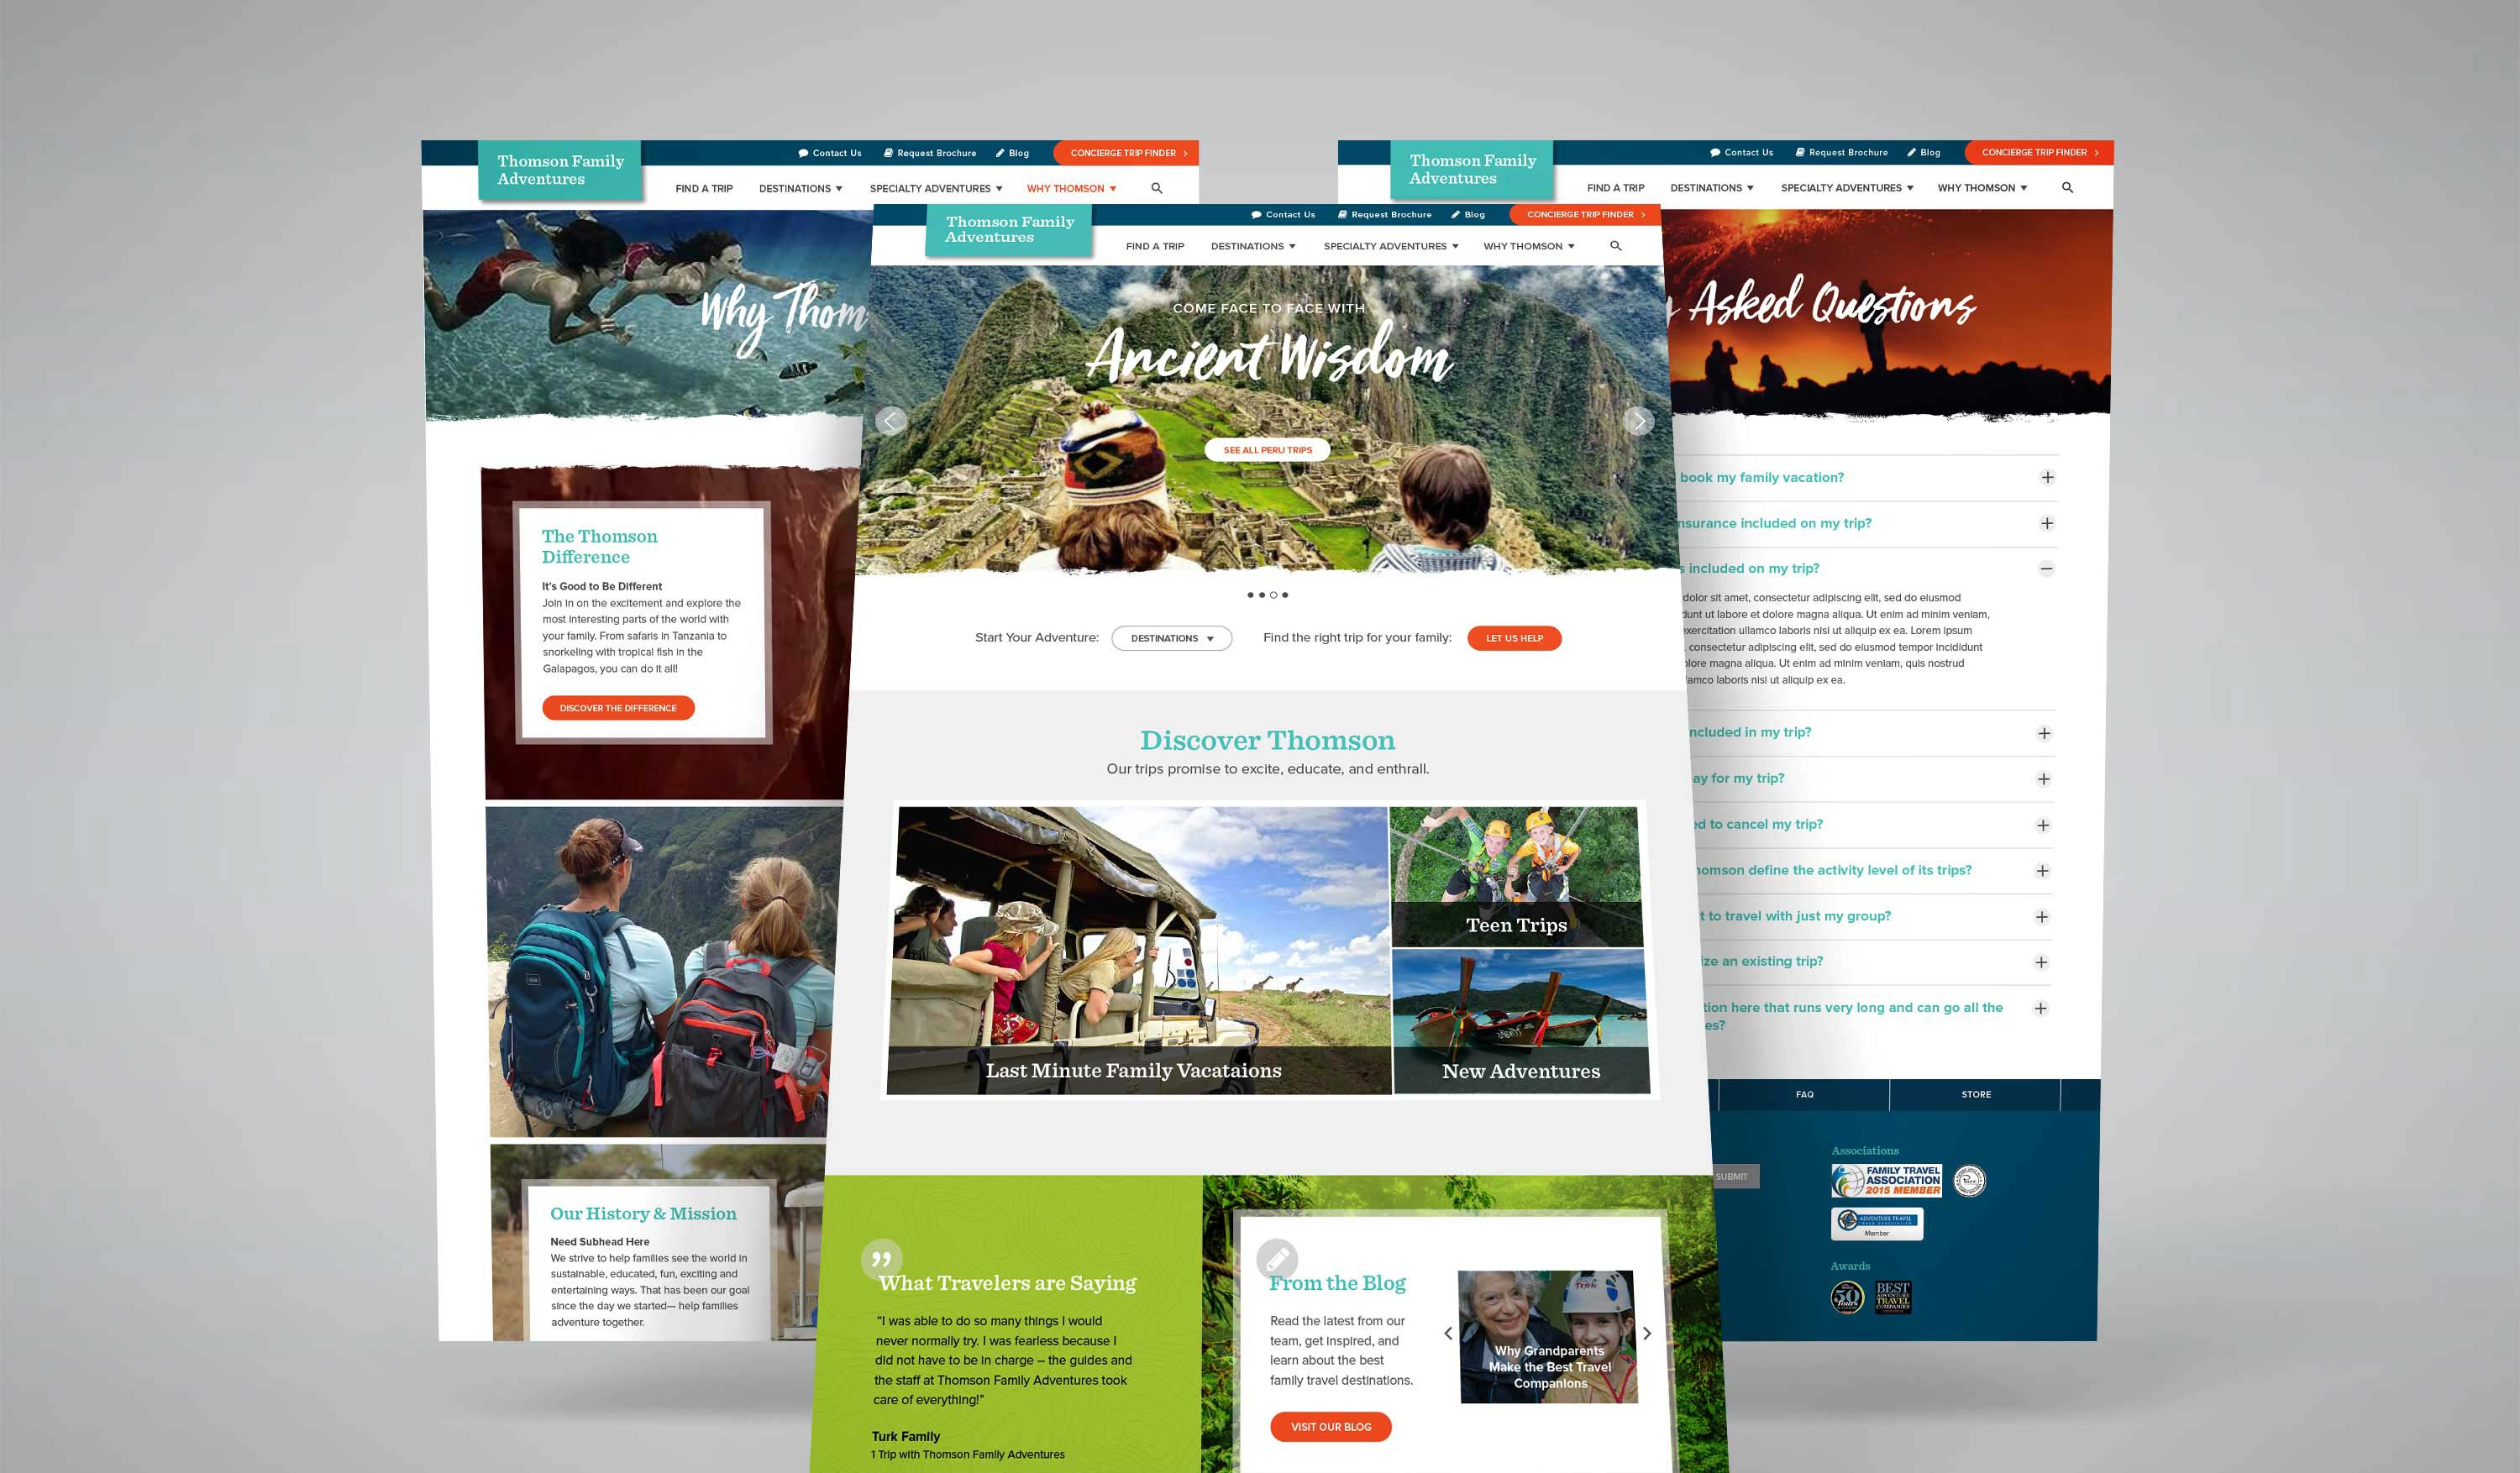 Thomson Family Adventures website screens